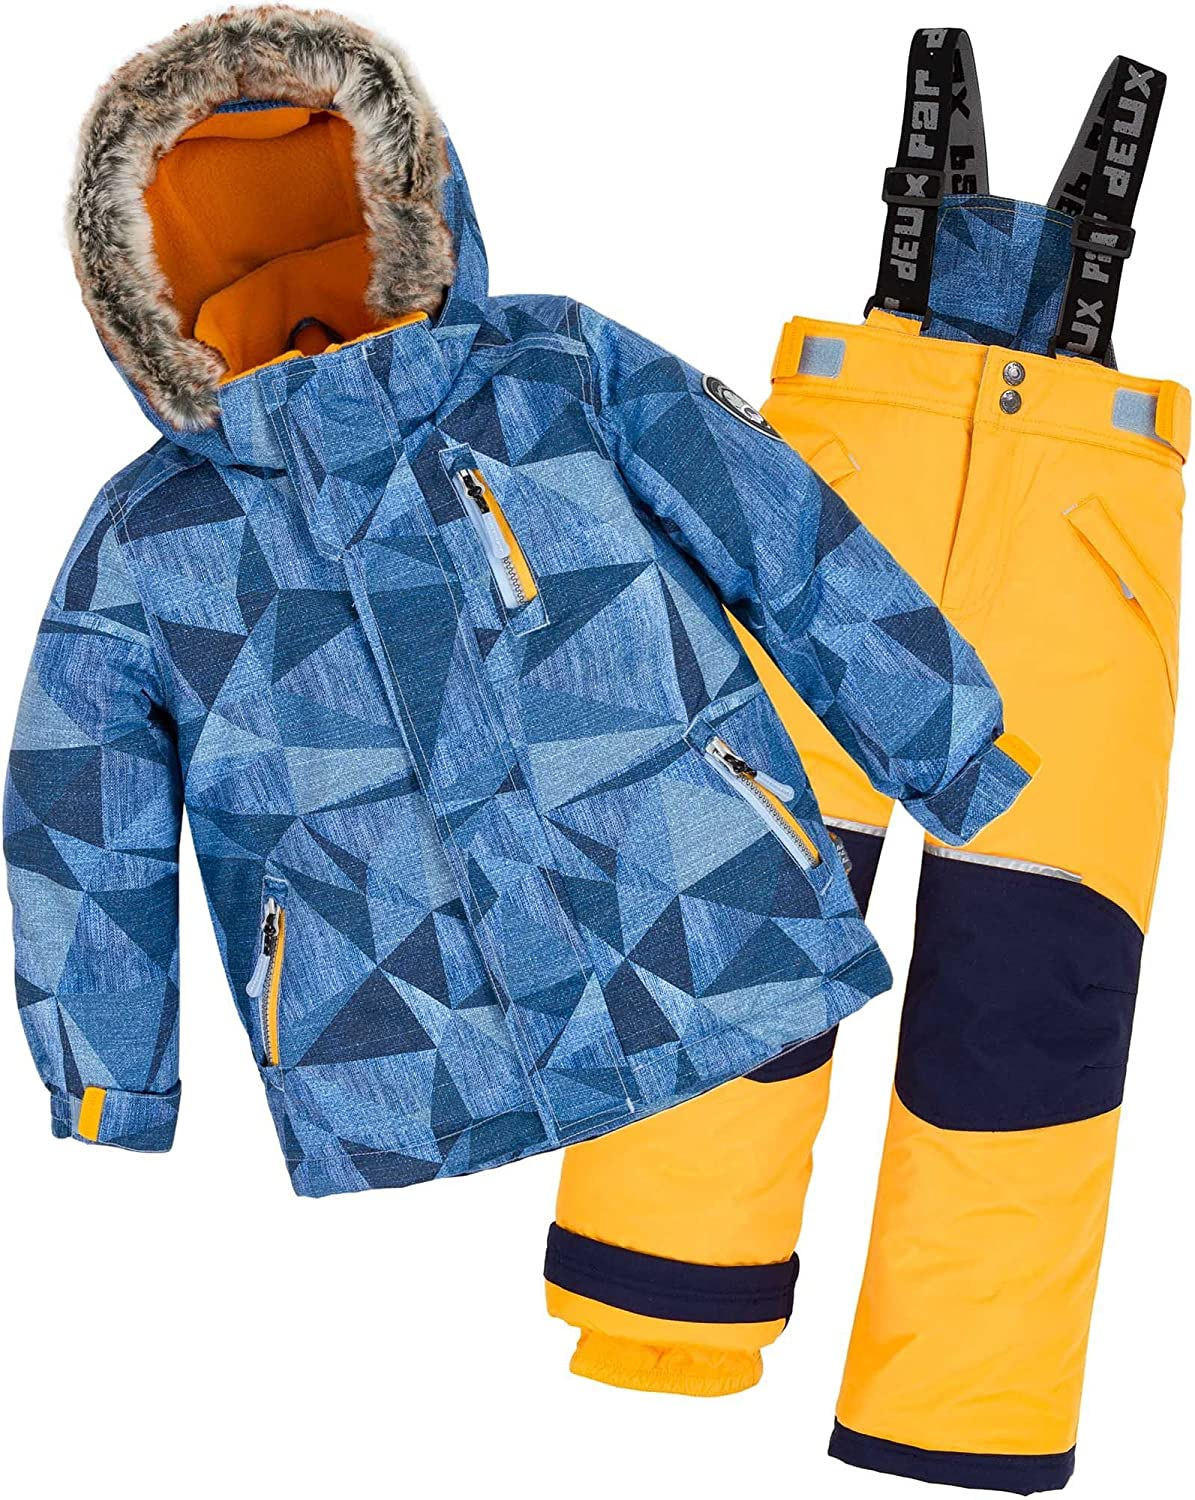 Sizes 5-14 Deux par Deux Boys 2-Piece Snowsuit Back to Cool Navy